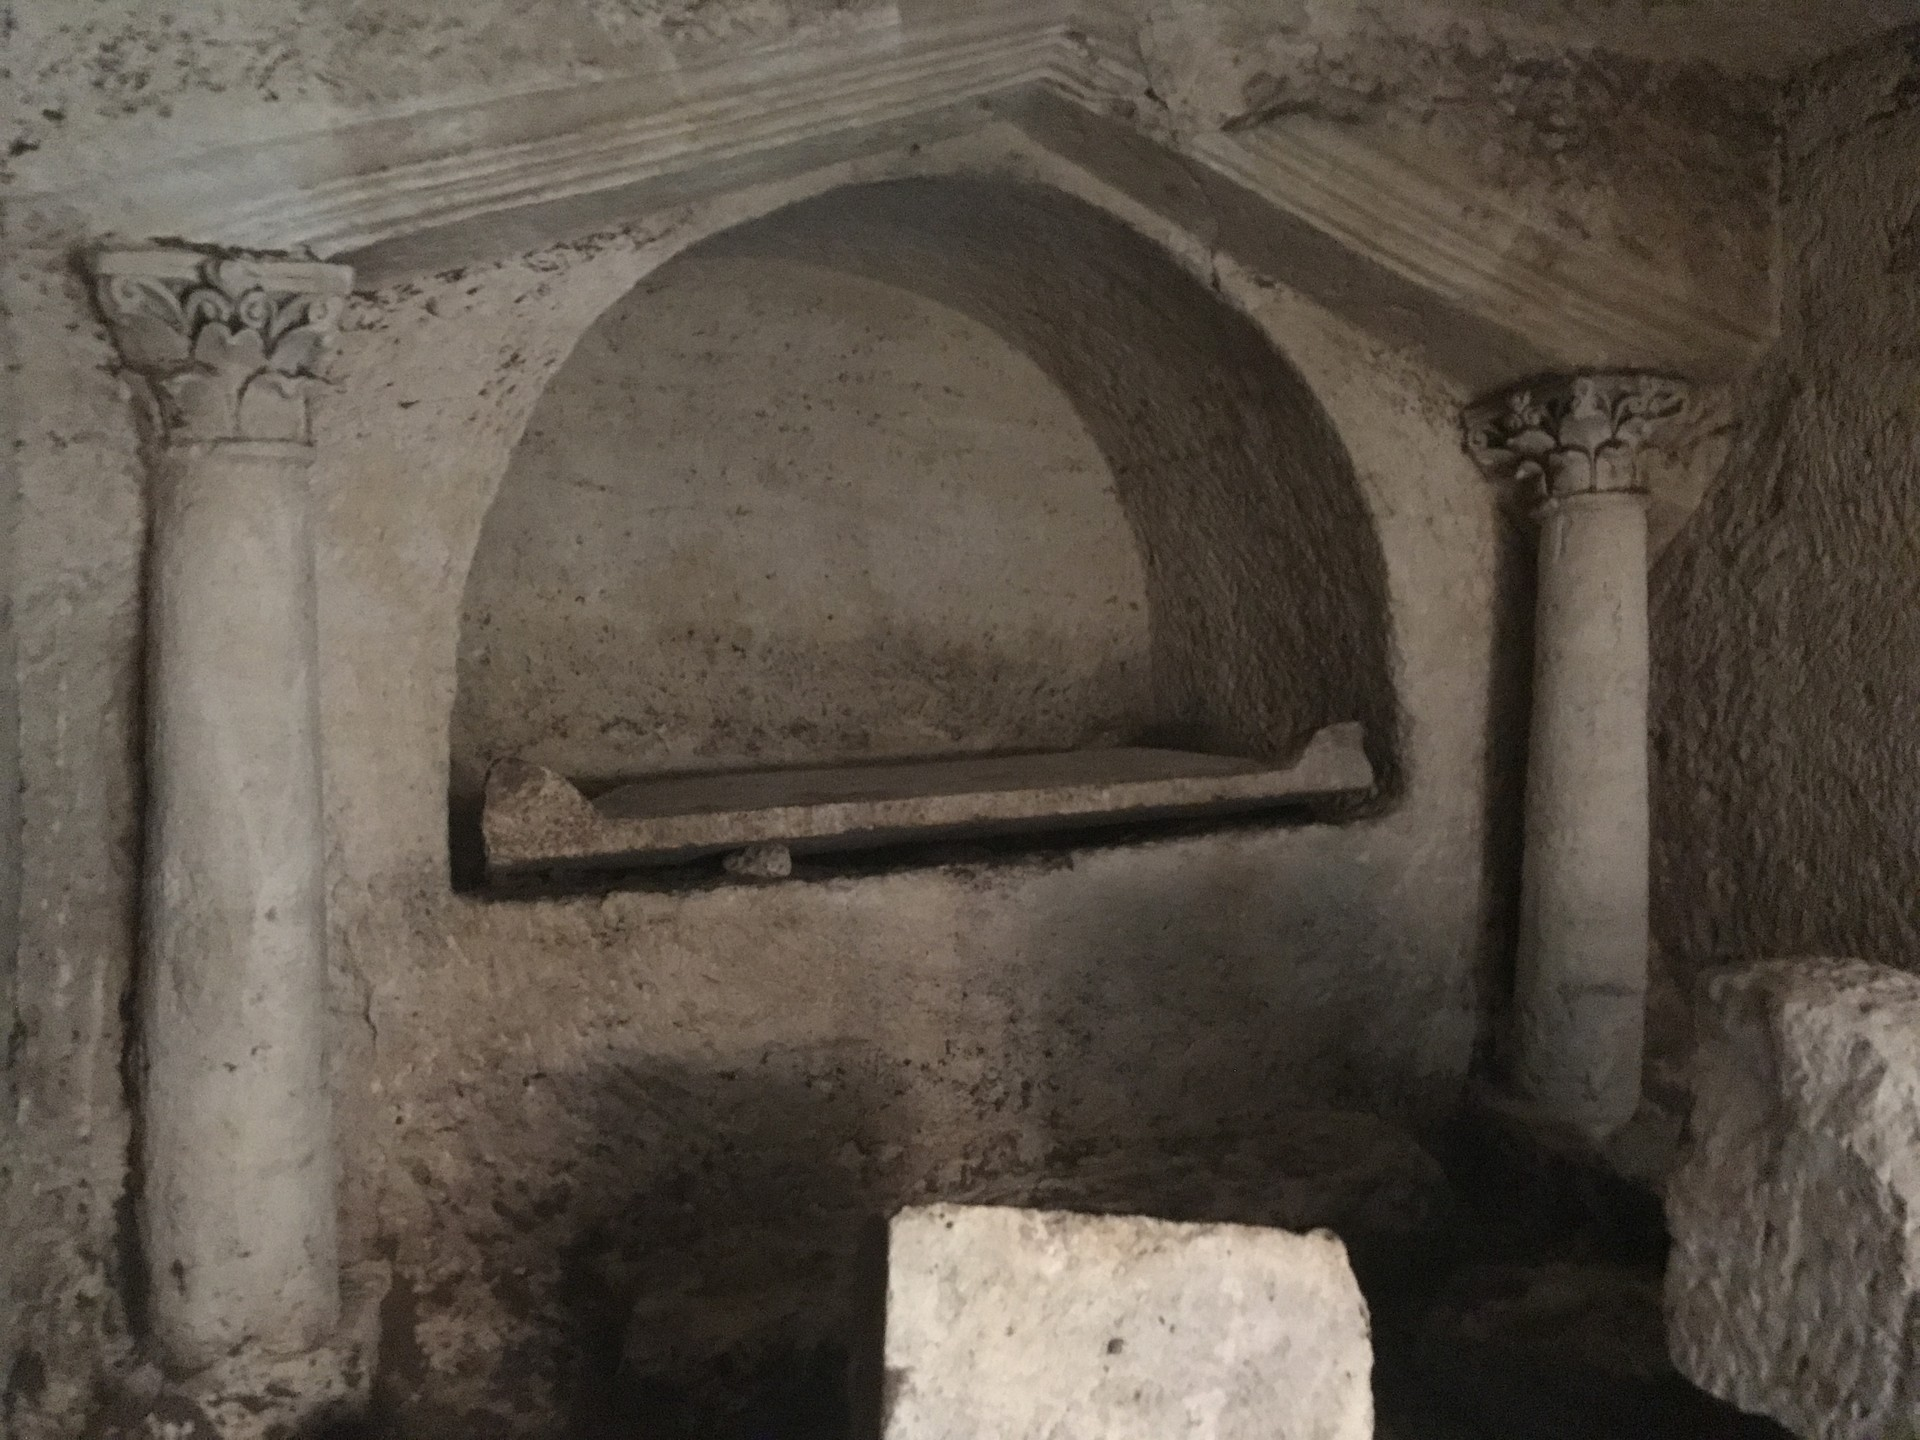 Reference photo - Tomb chamber interior